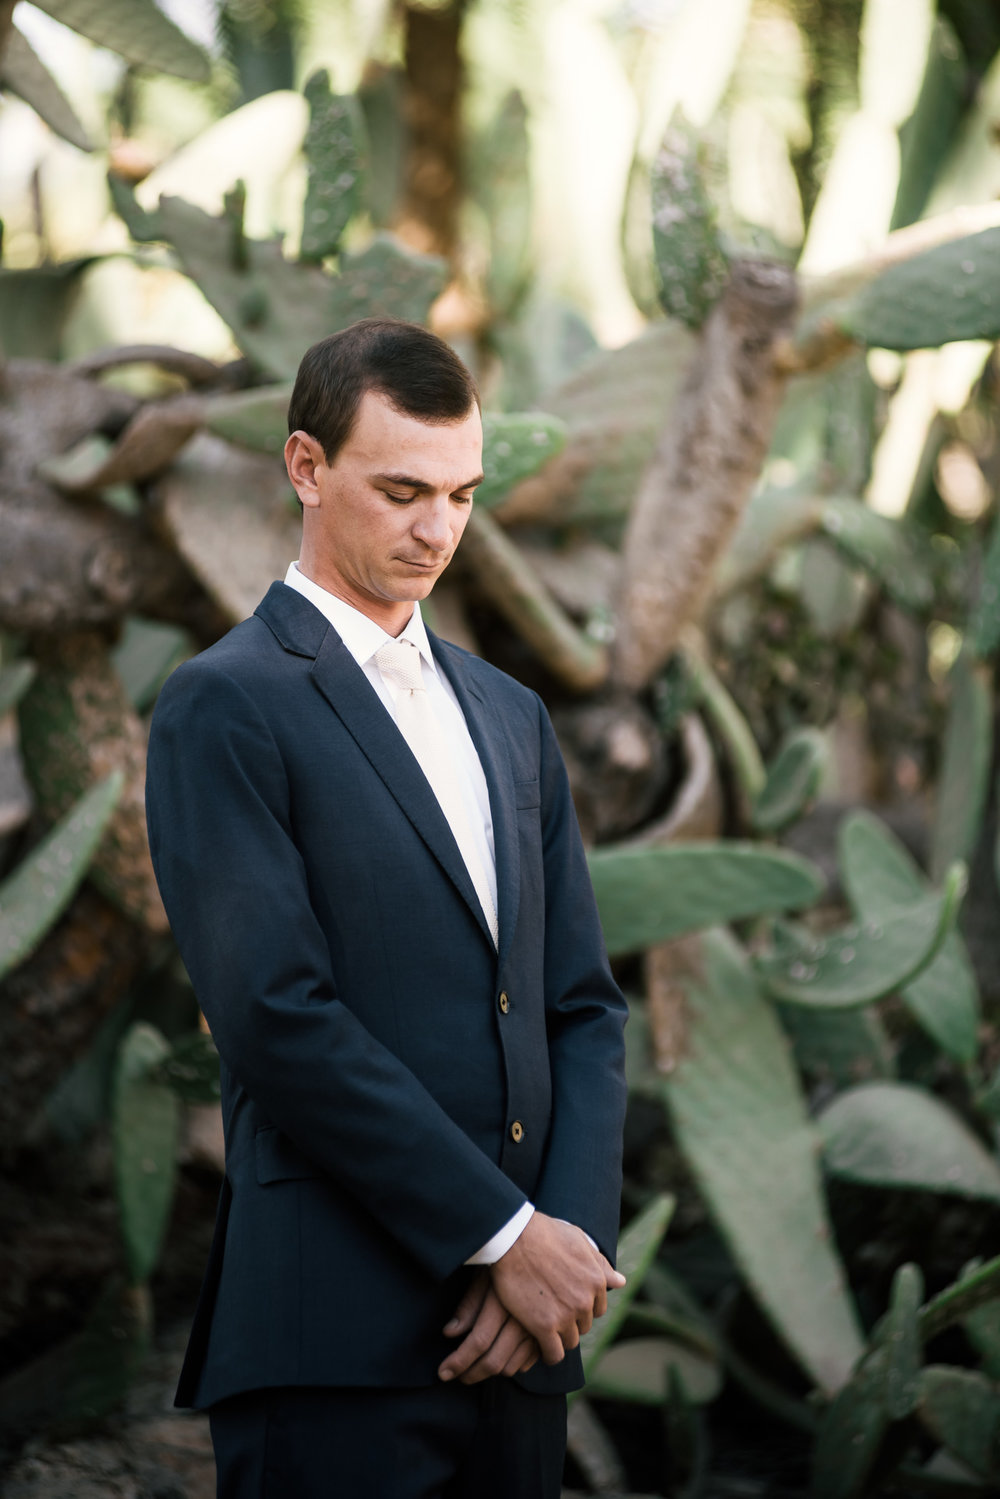 Groom tries to stay calm as he eagerly awaits his bride captured by photographer during romantic wedding at the historic Leo Carrillo Ranch in Carlsbad California